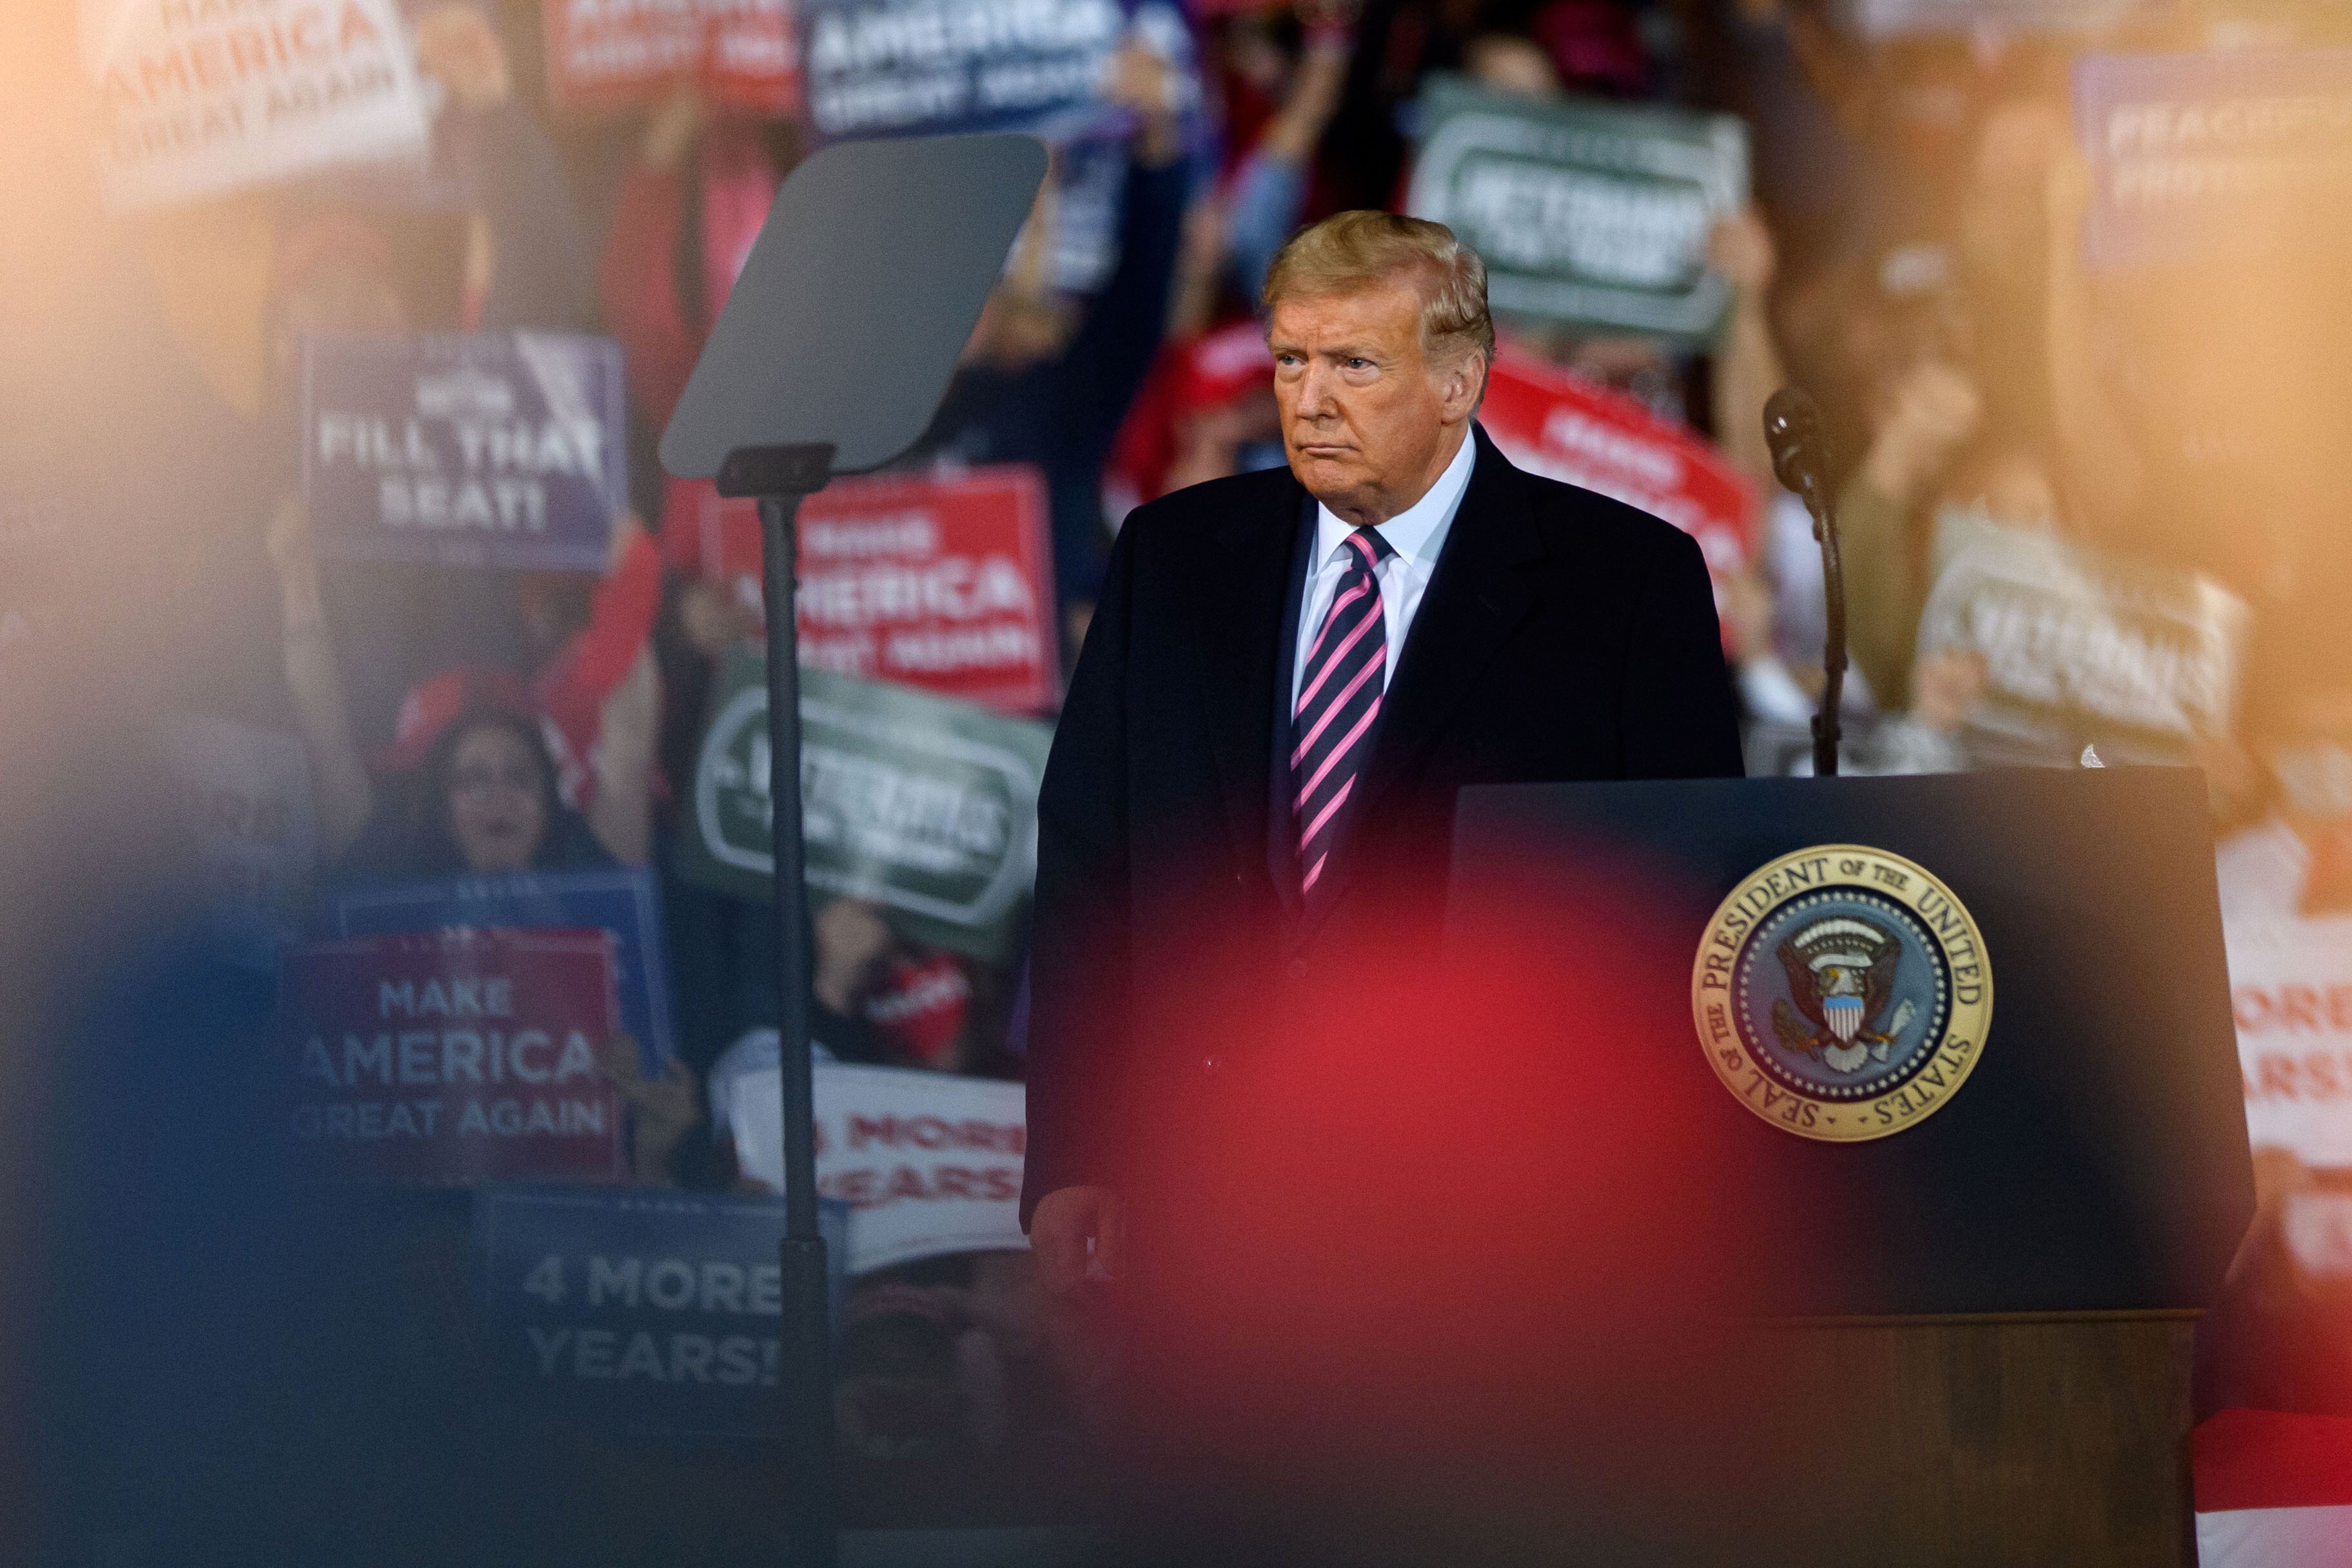 New York Times: Trump 2020 campaign refunds millions to donors after using aggressive fundraising tactic